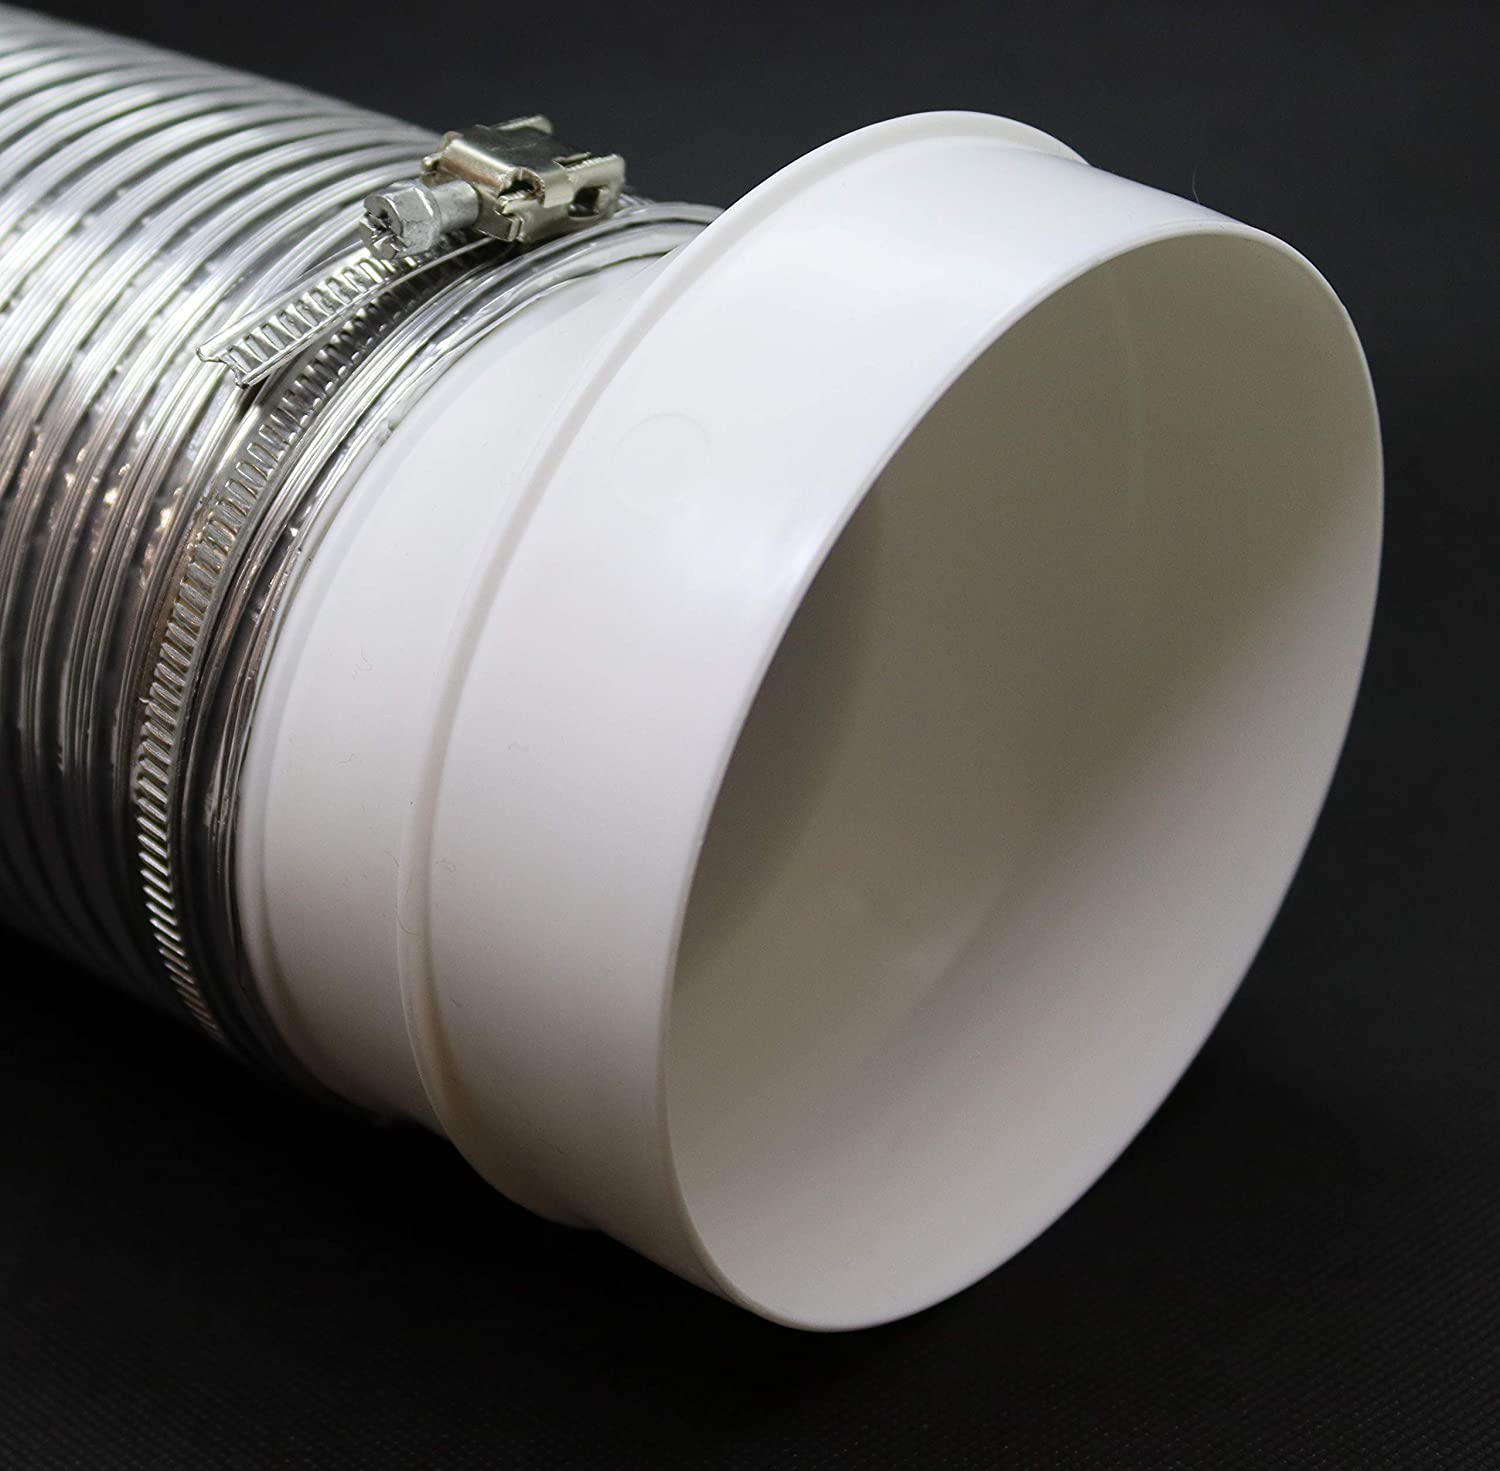 Duct Reducer Round Reducer Duct Fitting Pipe Increaser Reducer PVC DWV Reducing Coupling Plastic, 5 to 4 Drain, Waste and Vent